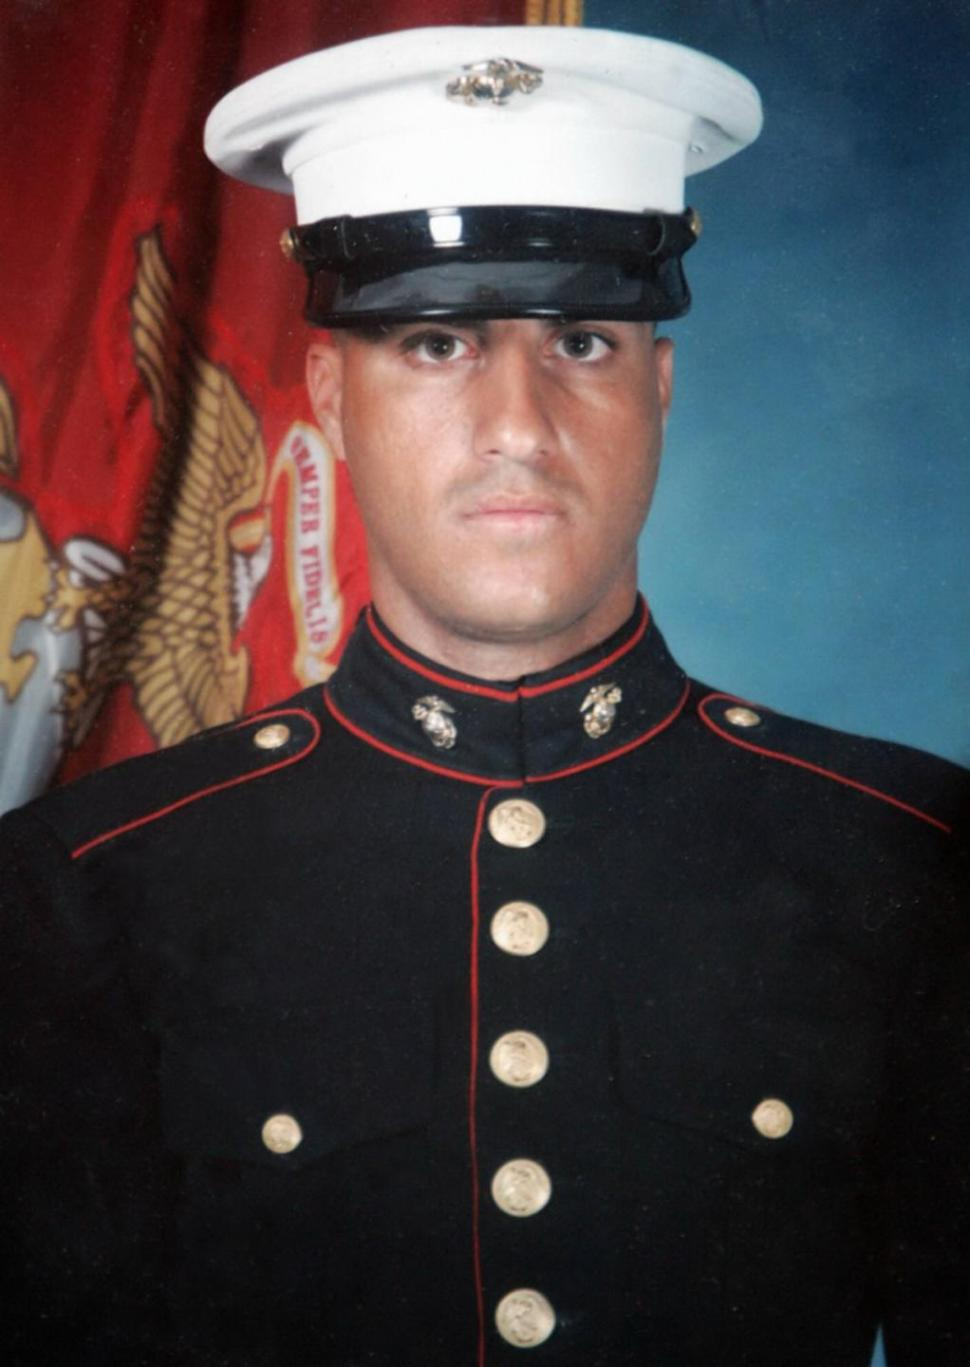 Lebanese-born US Marine Corporal Wassef Ali Hassoun, who was believed to be held hostage in Iraq.